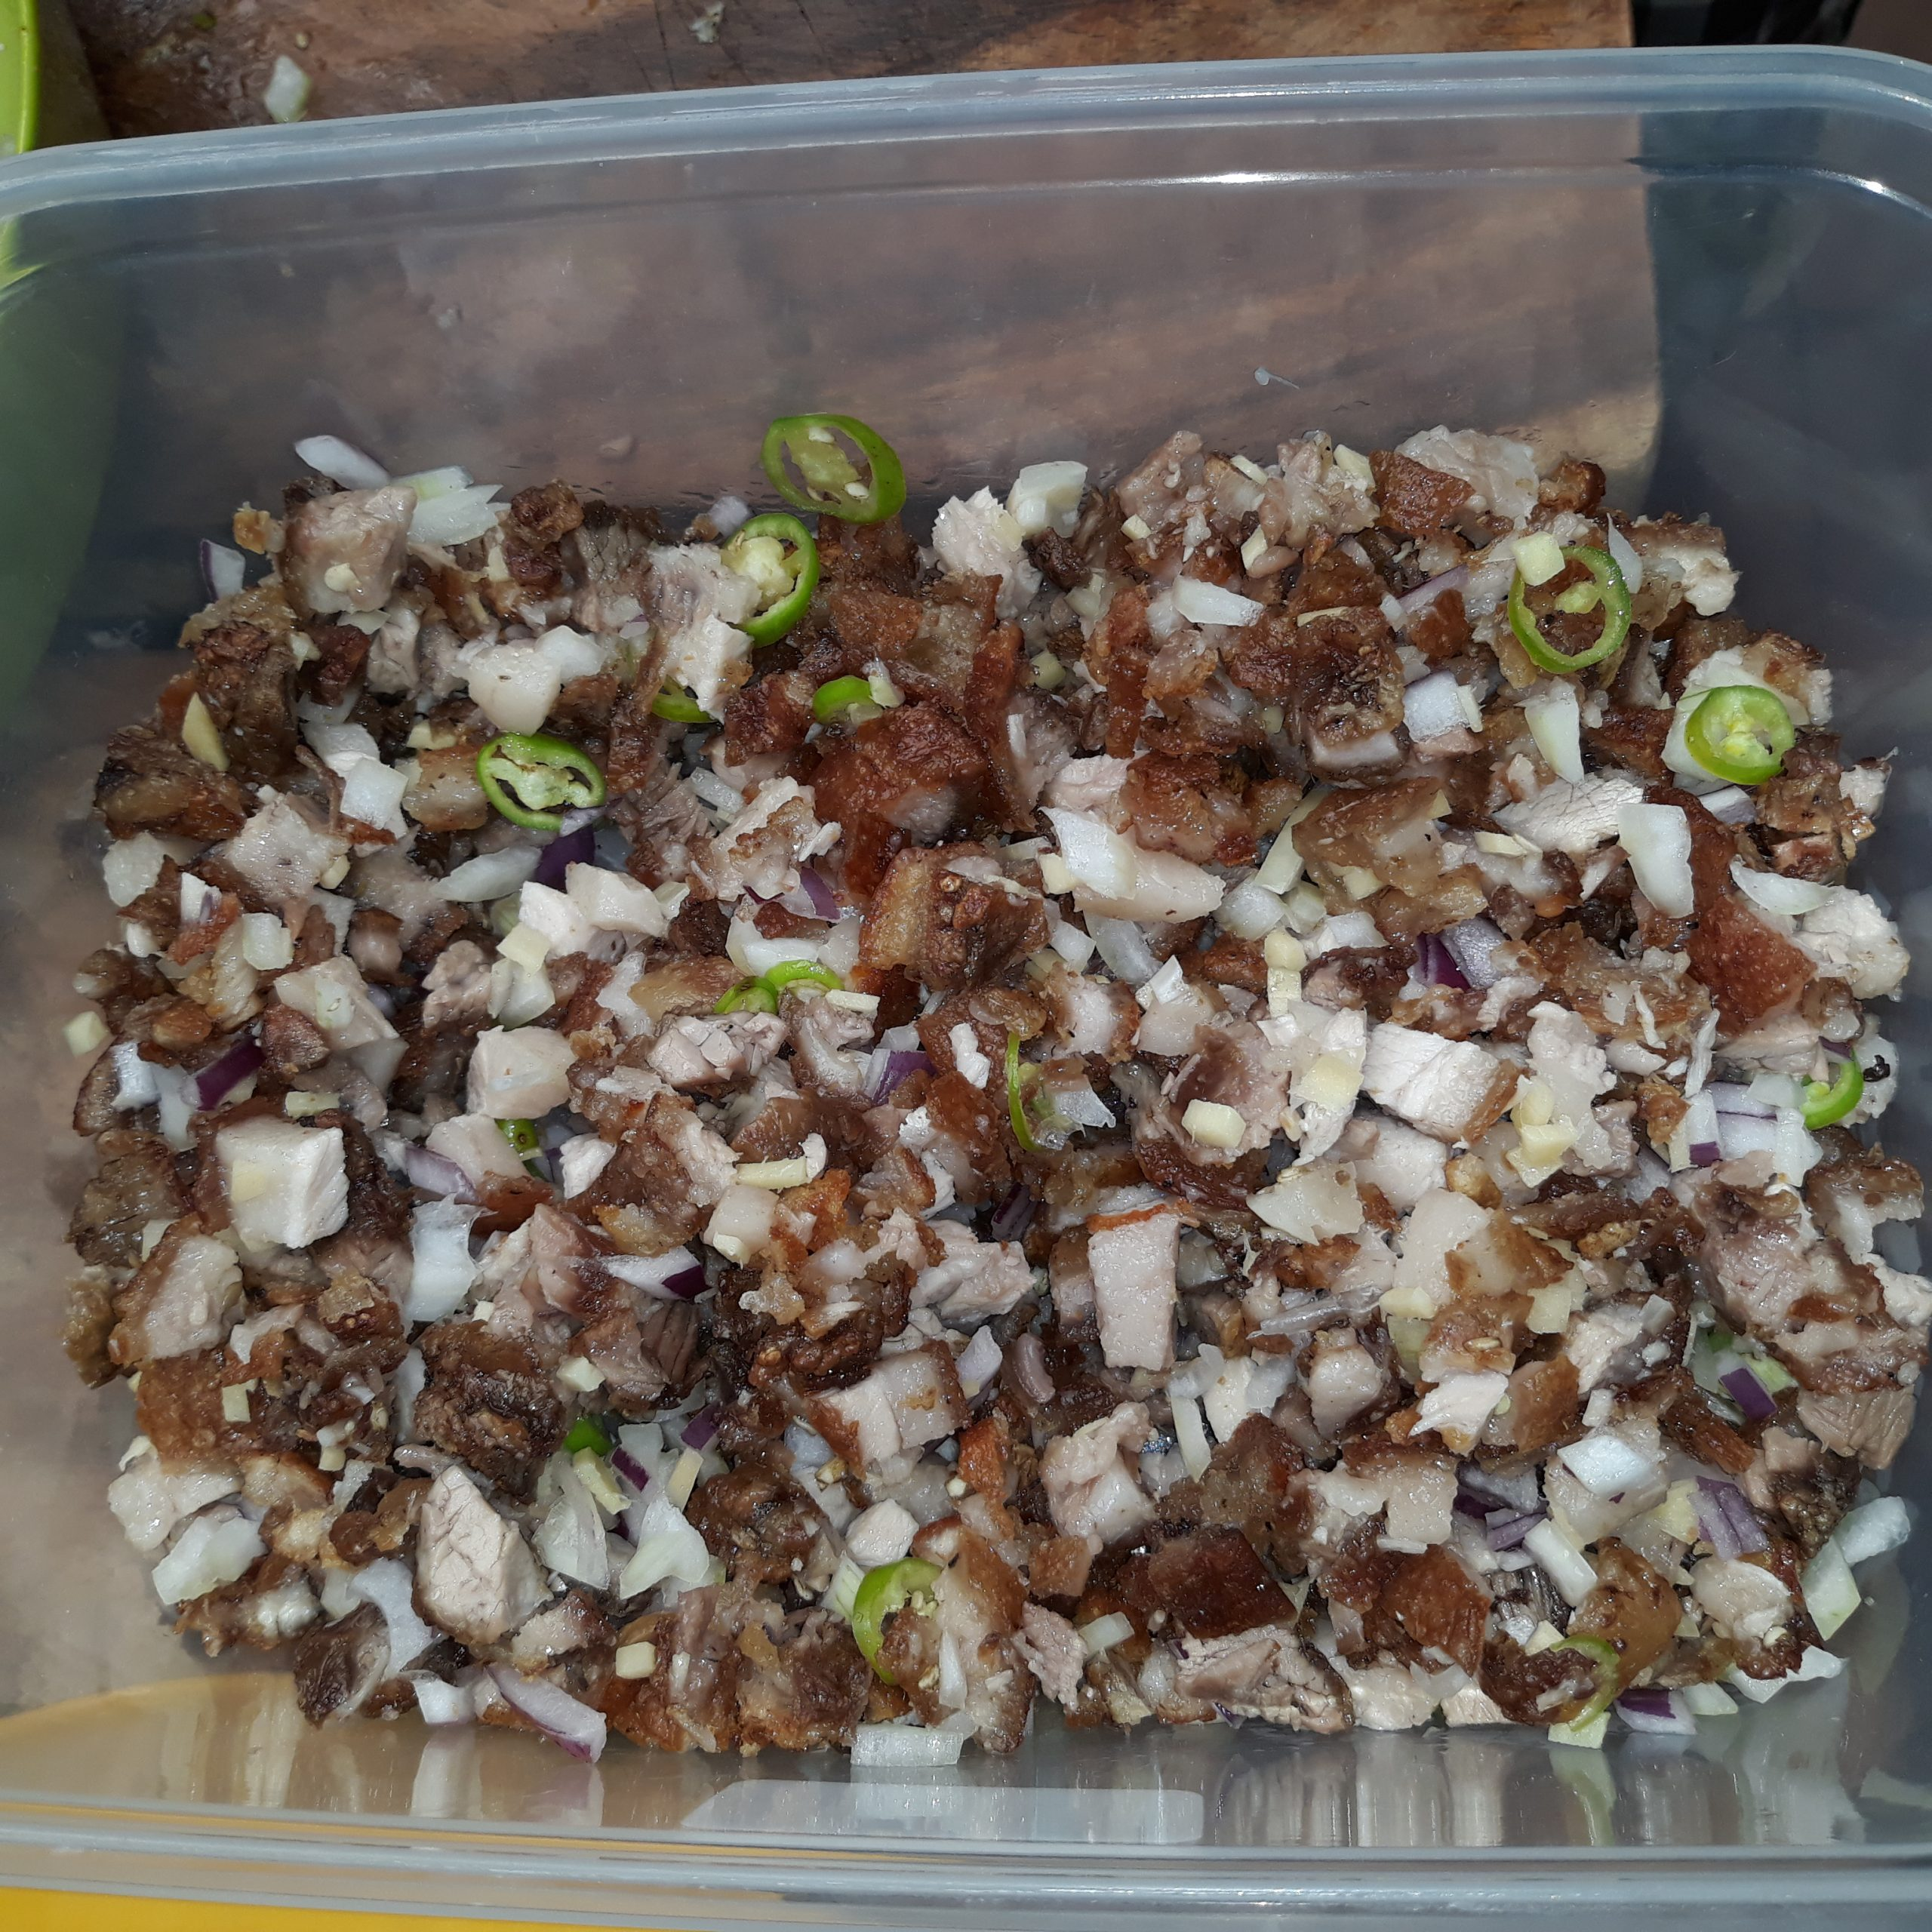 Cooked sisig in a plastic container.